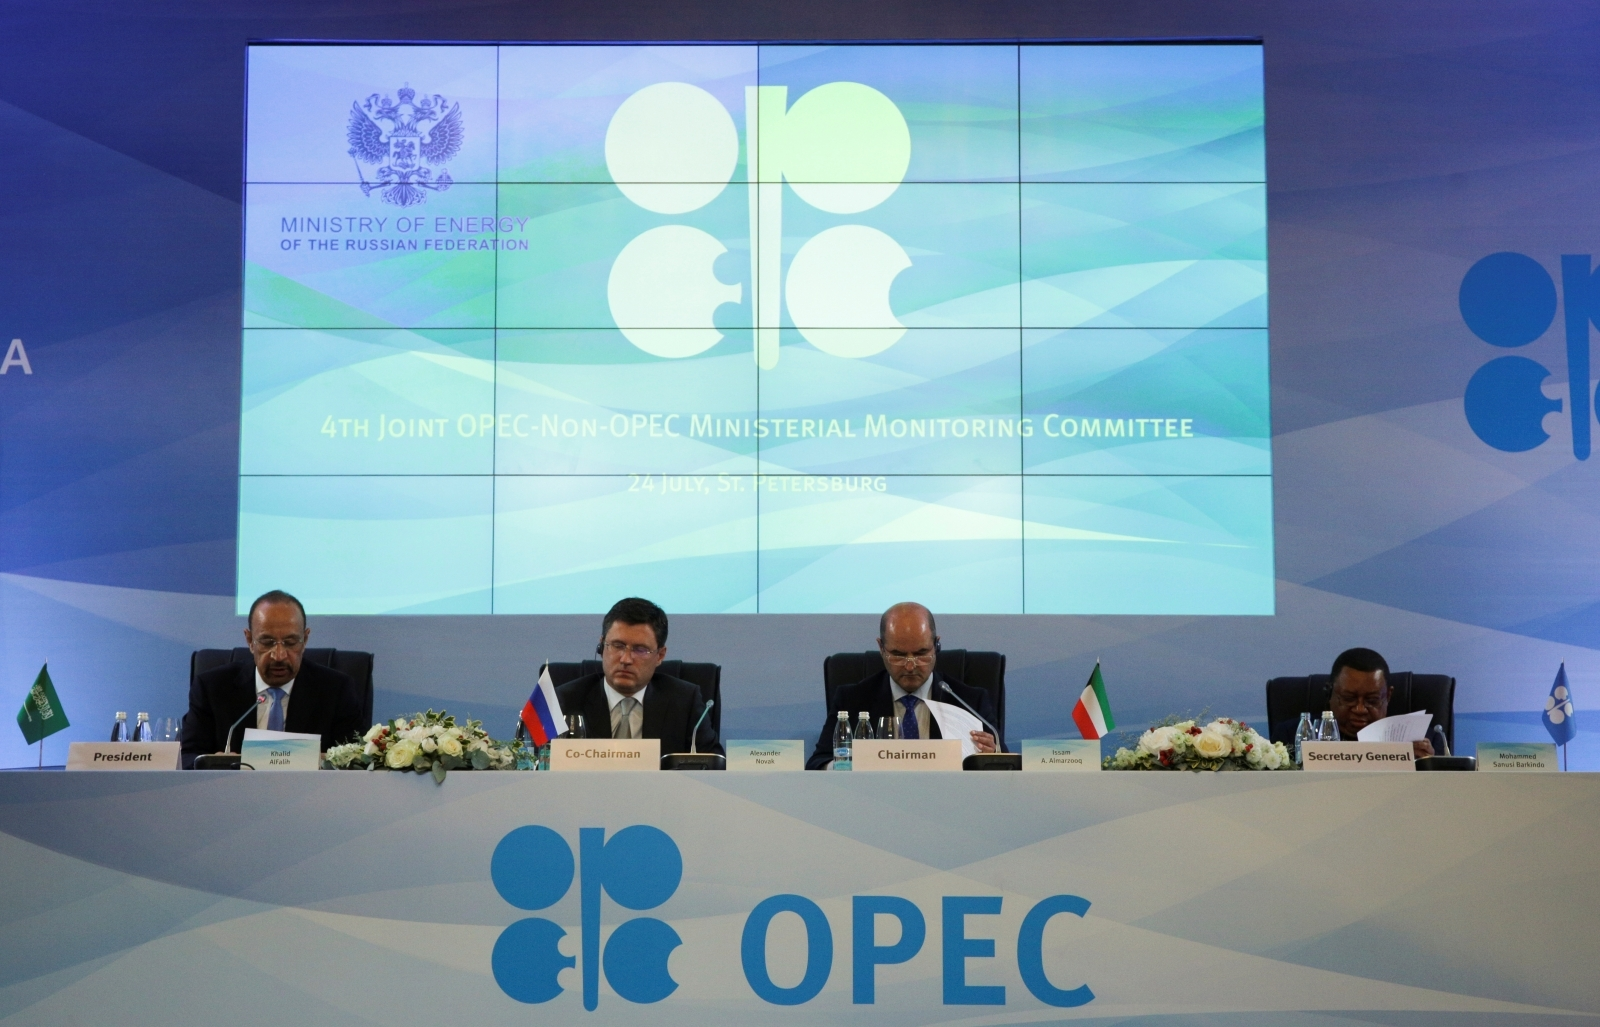 Opec meeting Alexander Novak